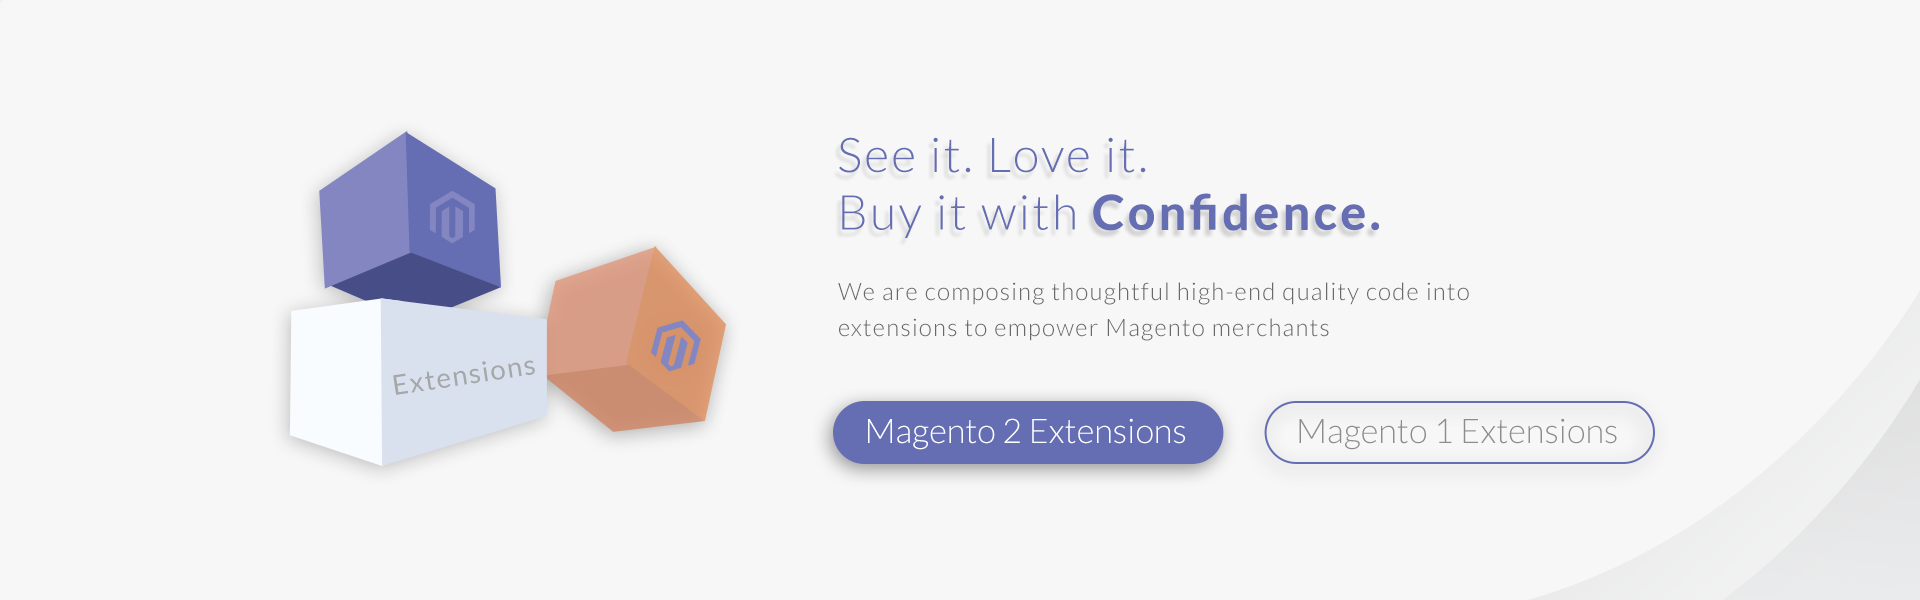 magento-extensions-banner